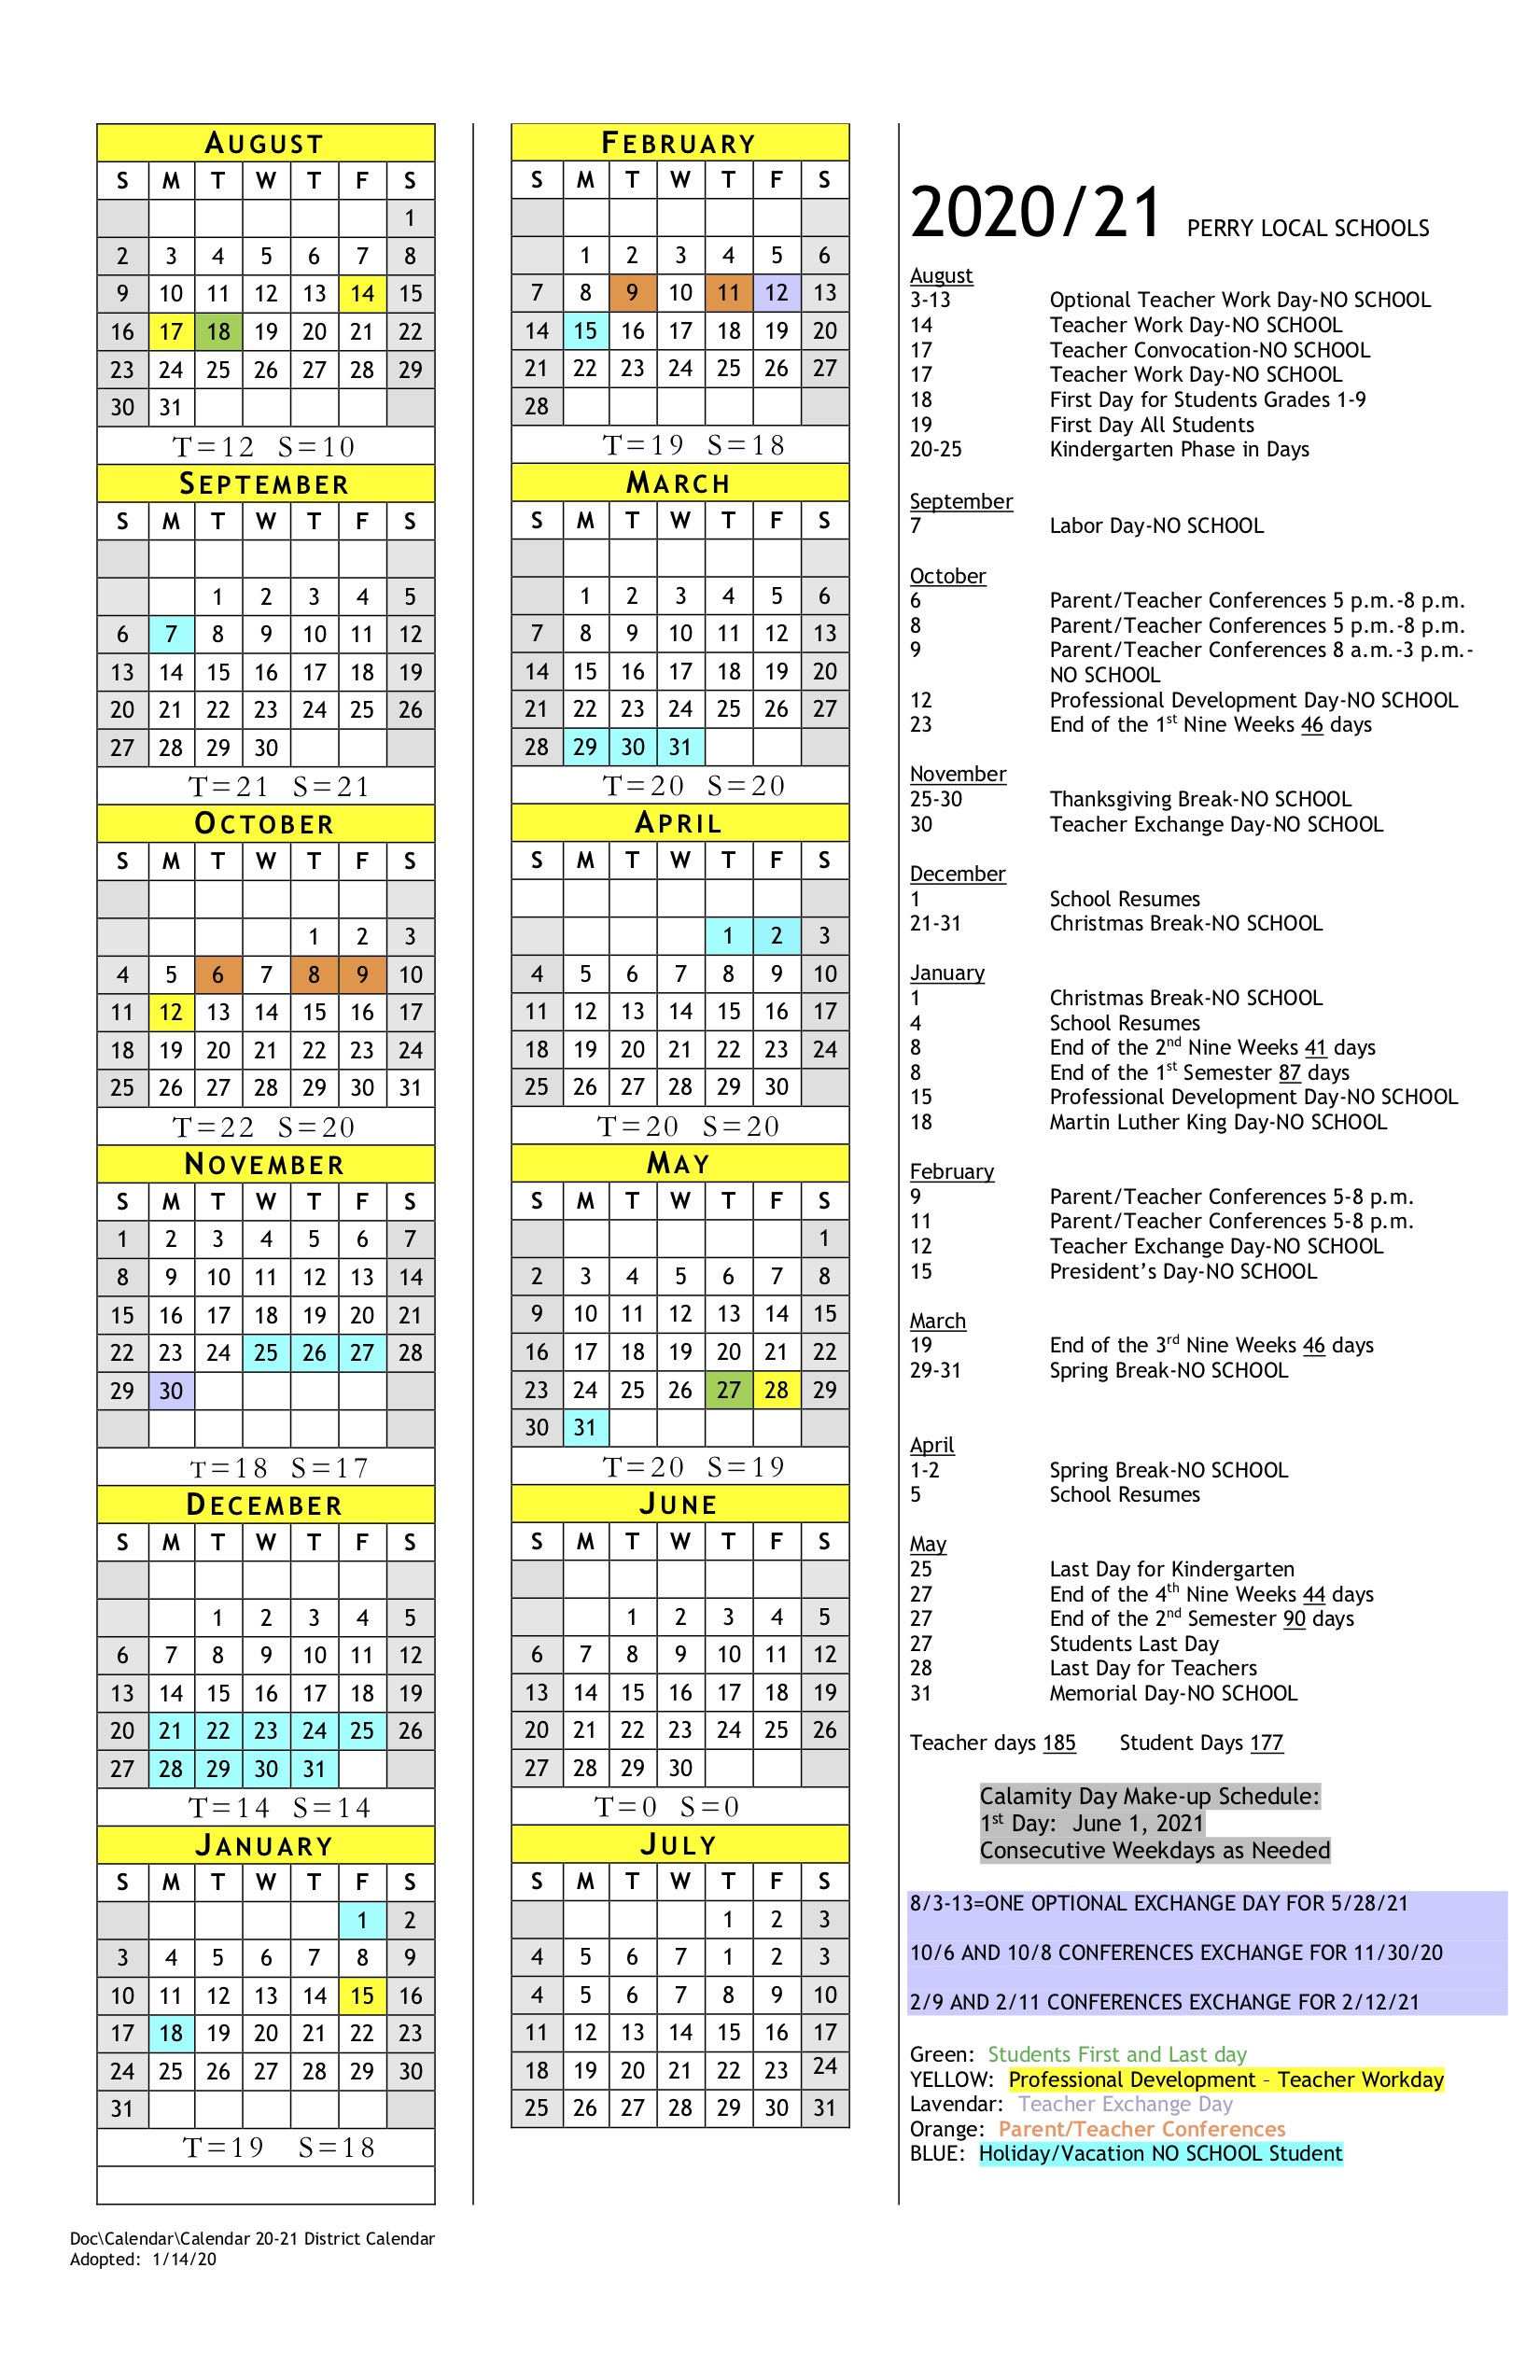 2020-2021 School Year District Calendar - Perry Athletics regarding Ohio County Schools Calendar 2020-2021 Wheeling